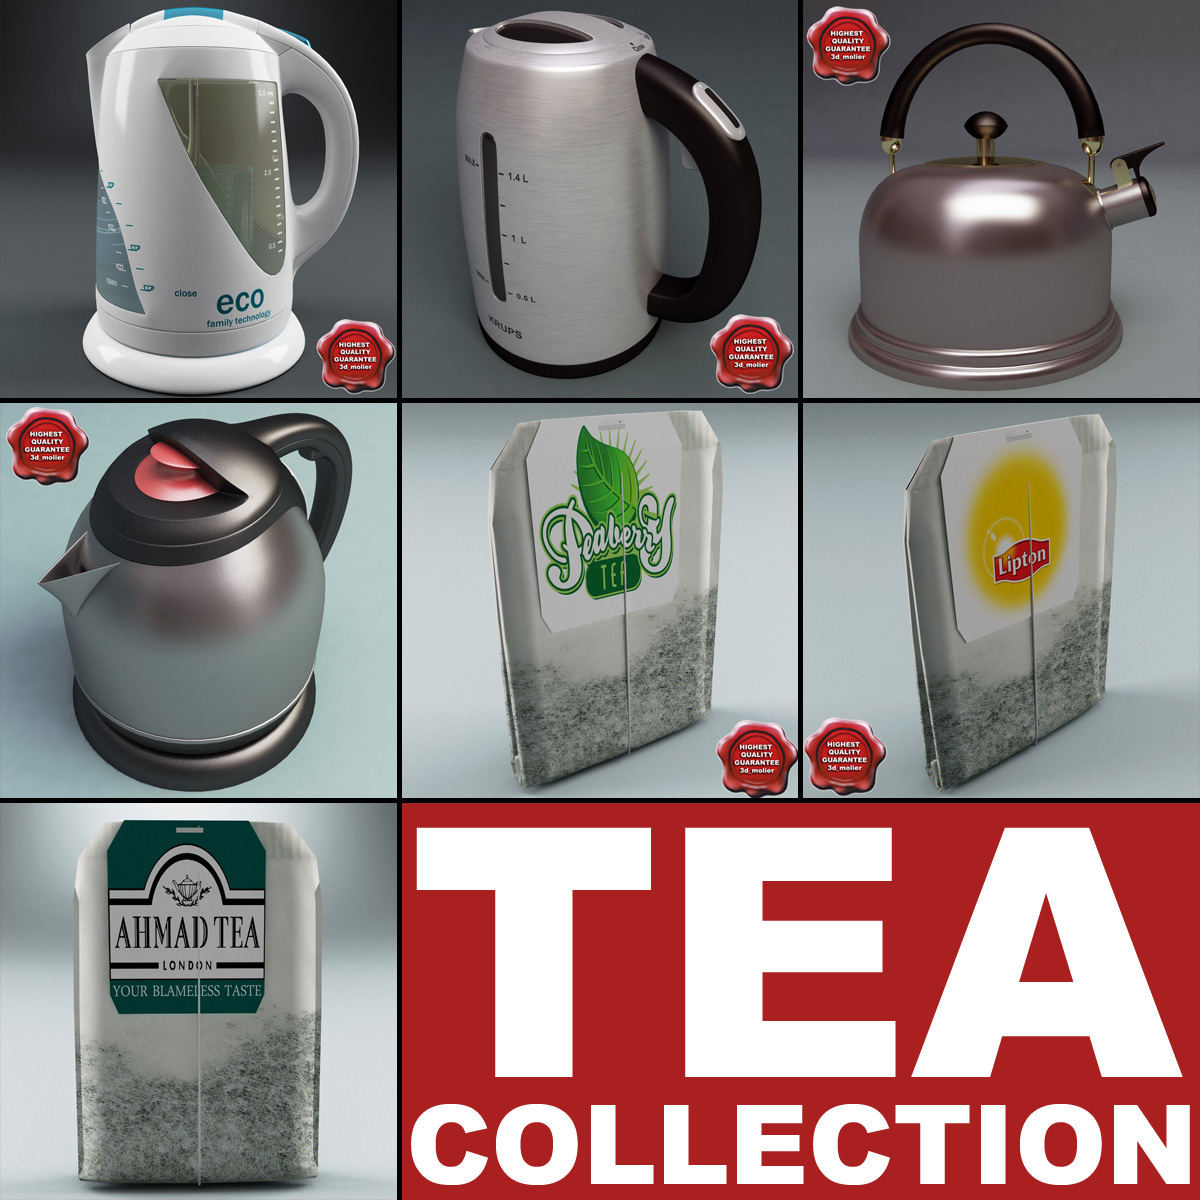 Kettles_and_Tea_Collection_00.jpg